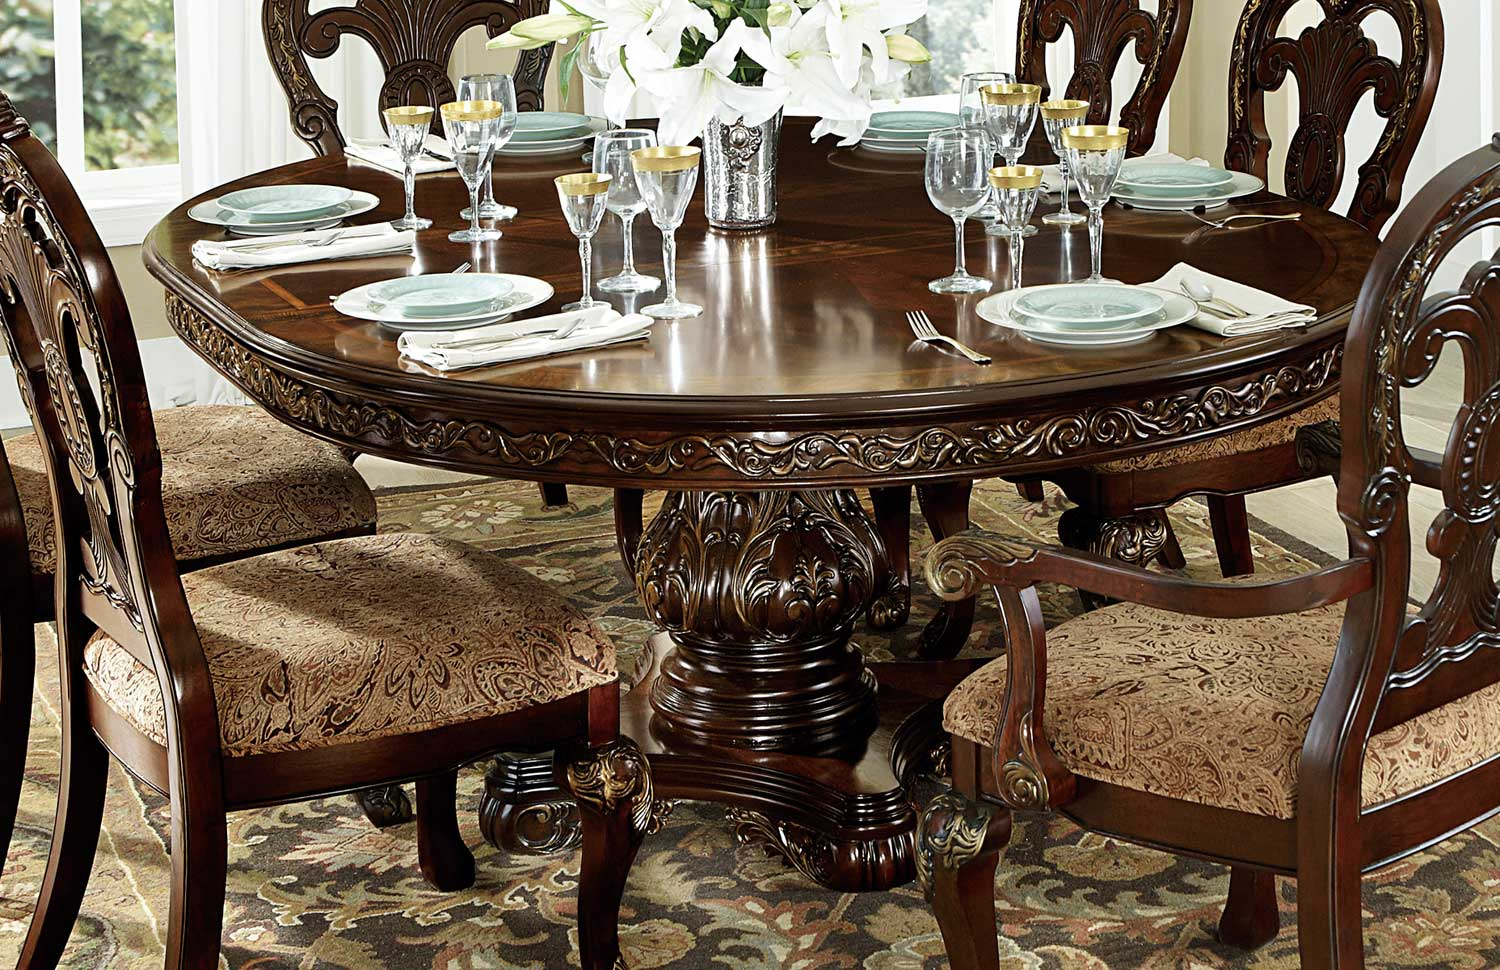 Homelegance Deryn Park Round Pedestal Dining Table - Cherry